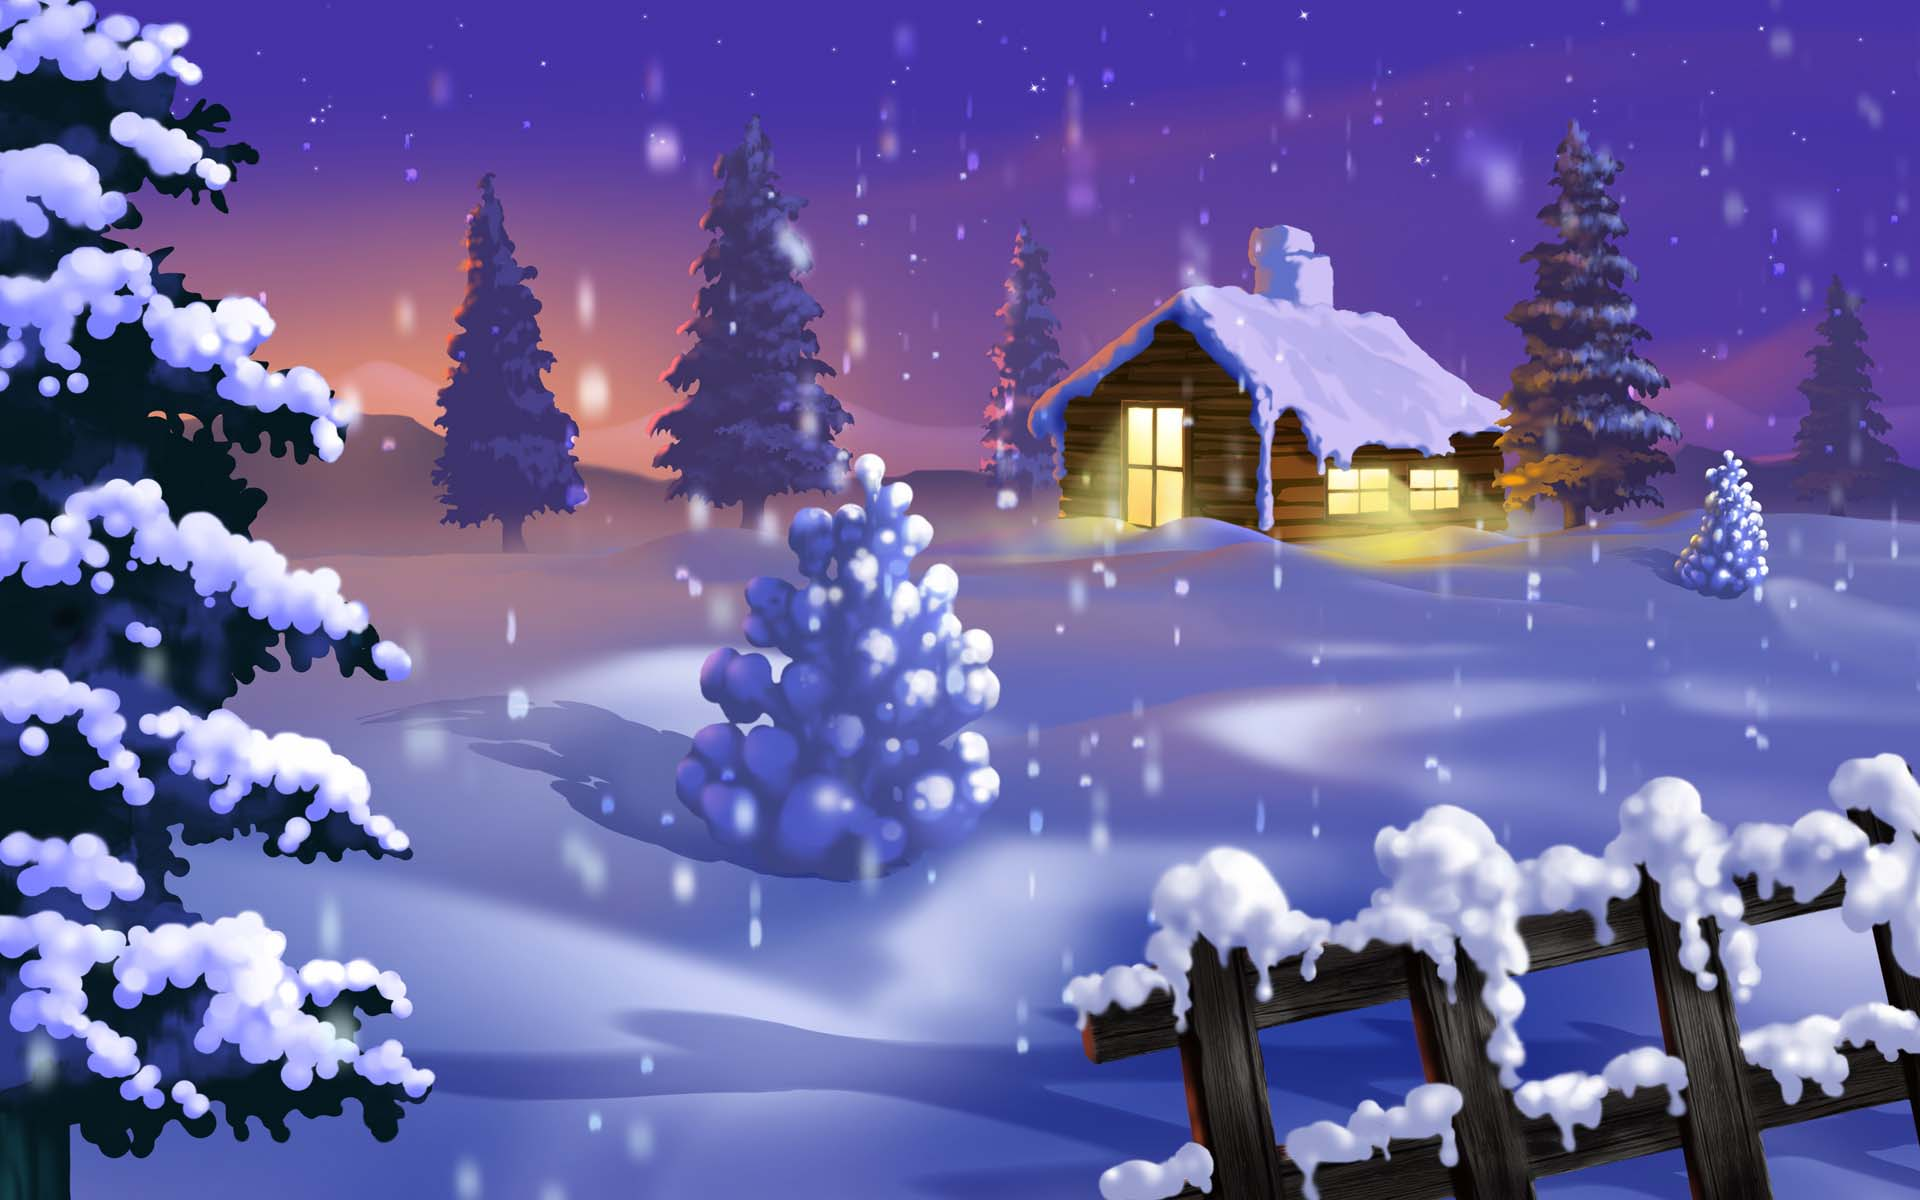 Christmas animated wallpaper